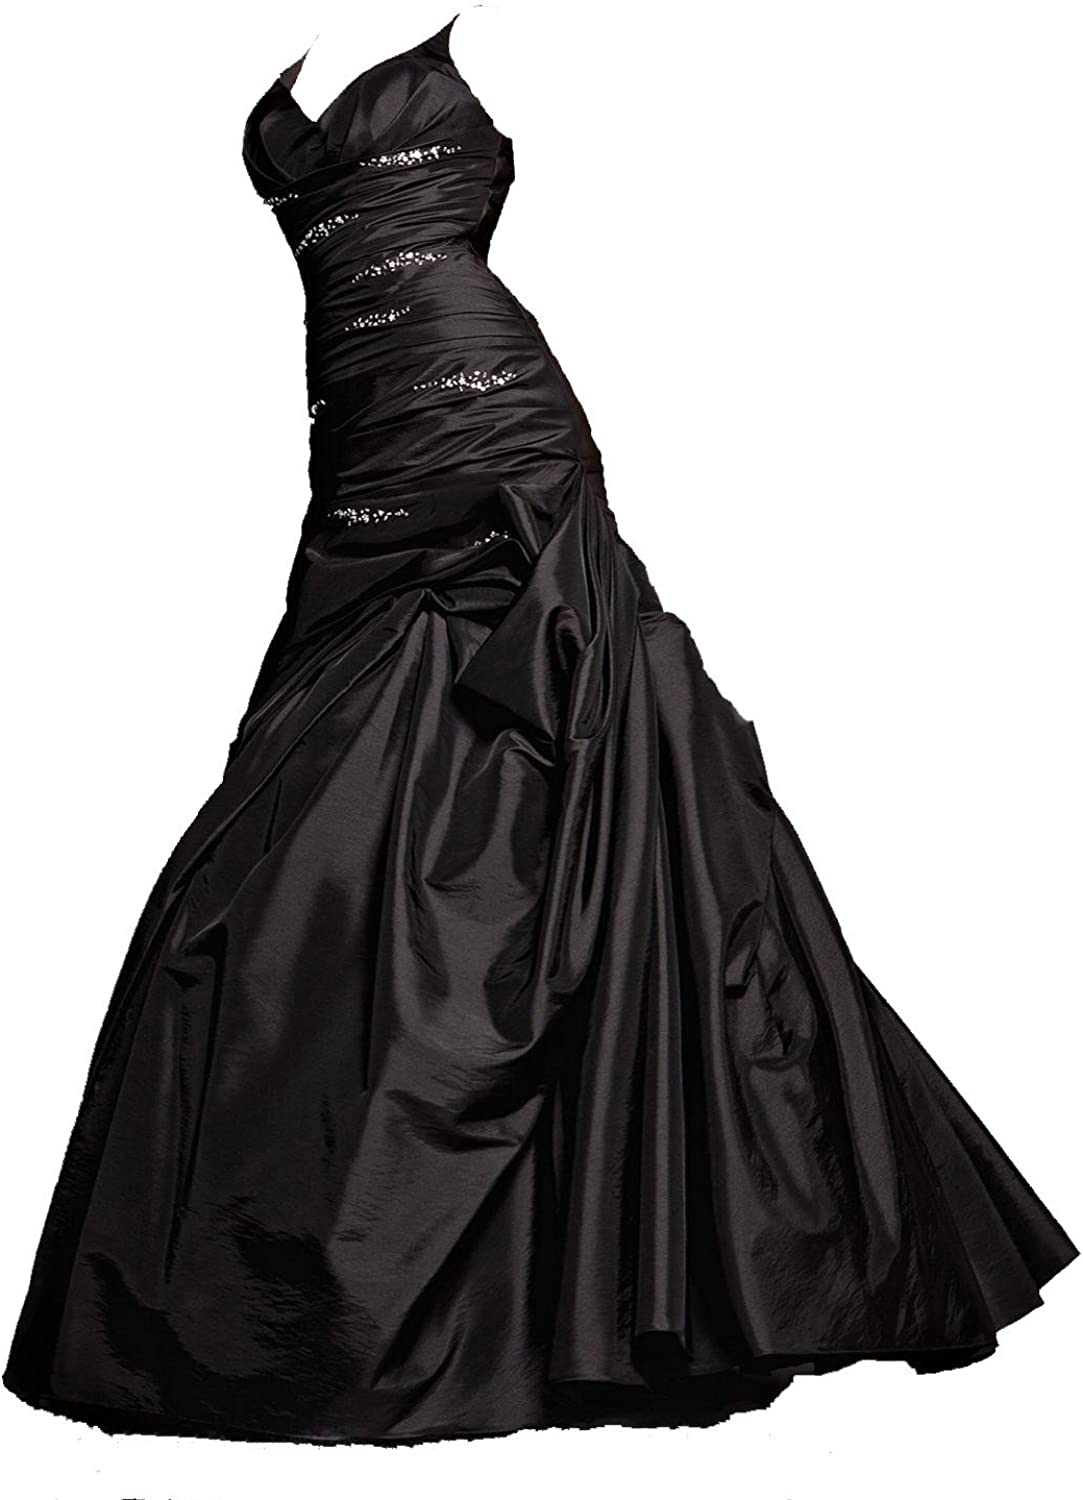 Bonnie clothing Womens Satin Ball Gown Black Beaded Prom Dresses